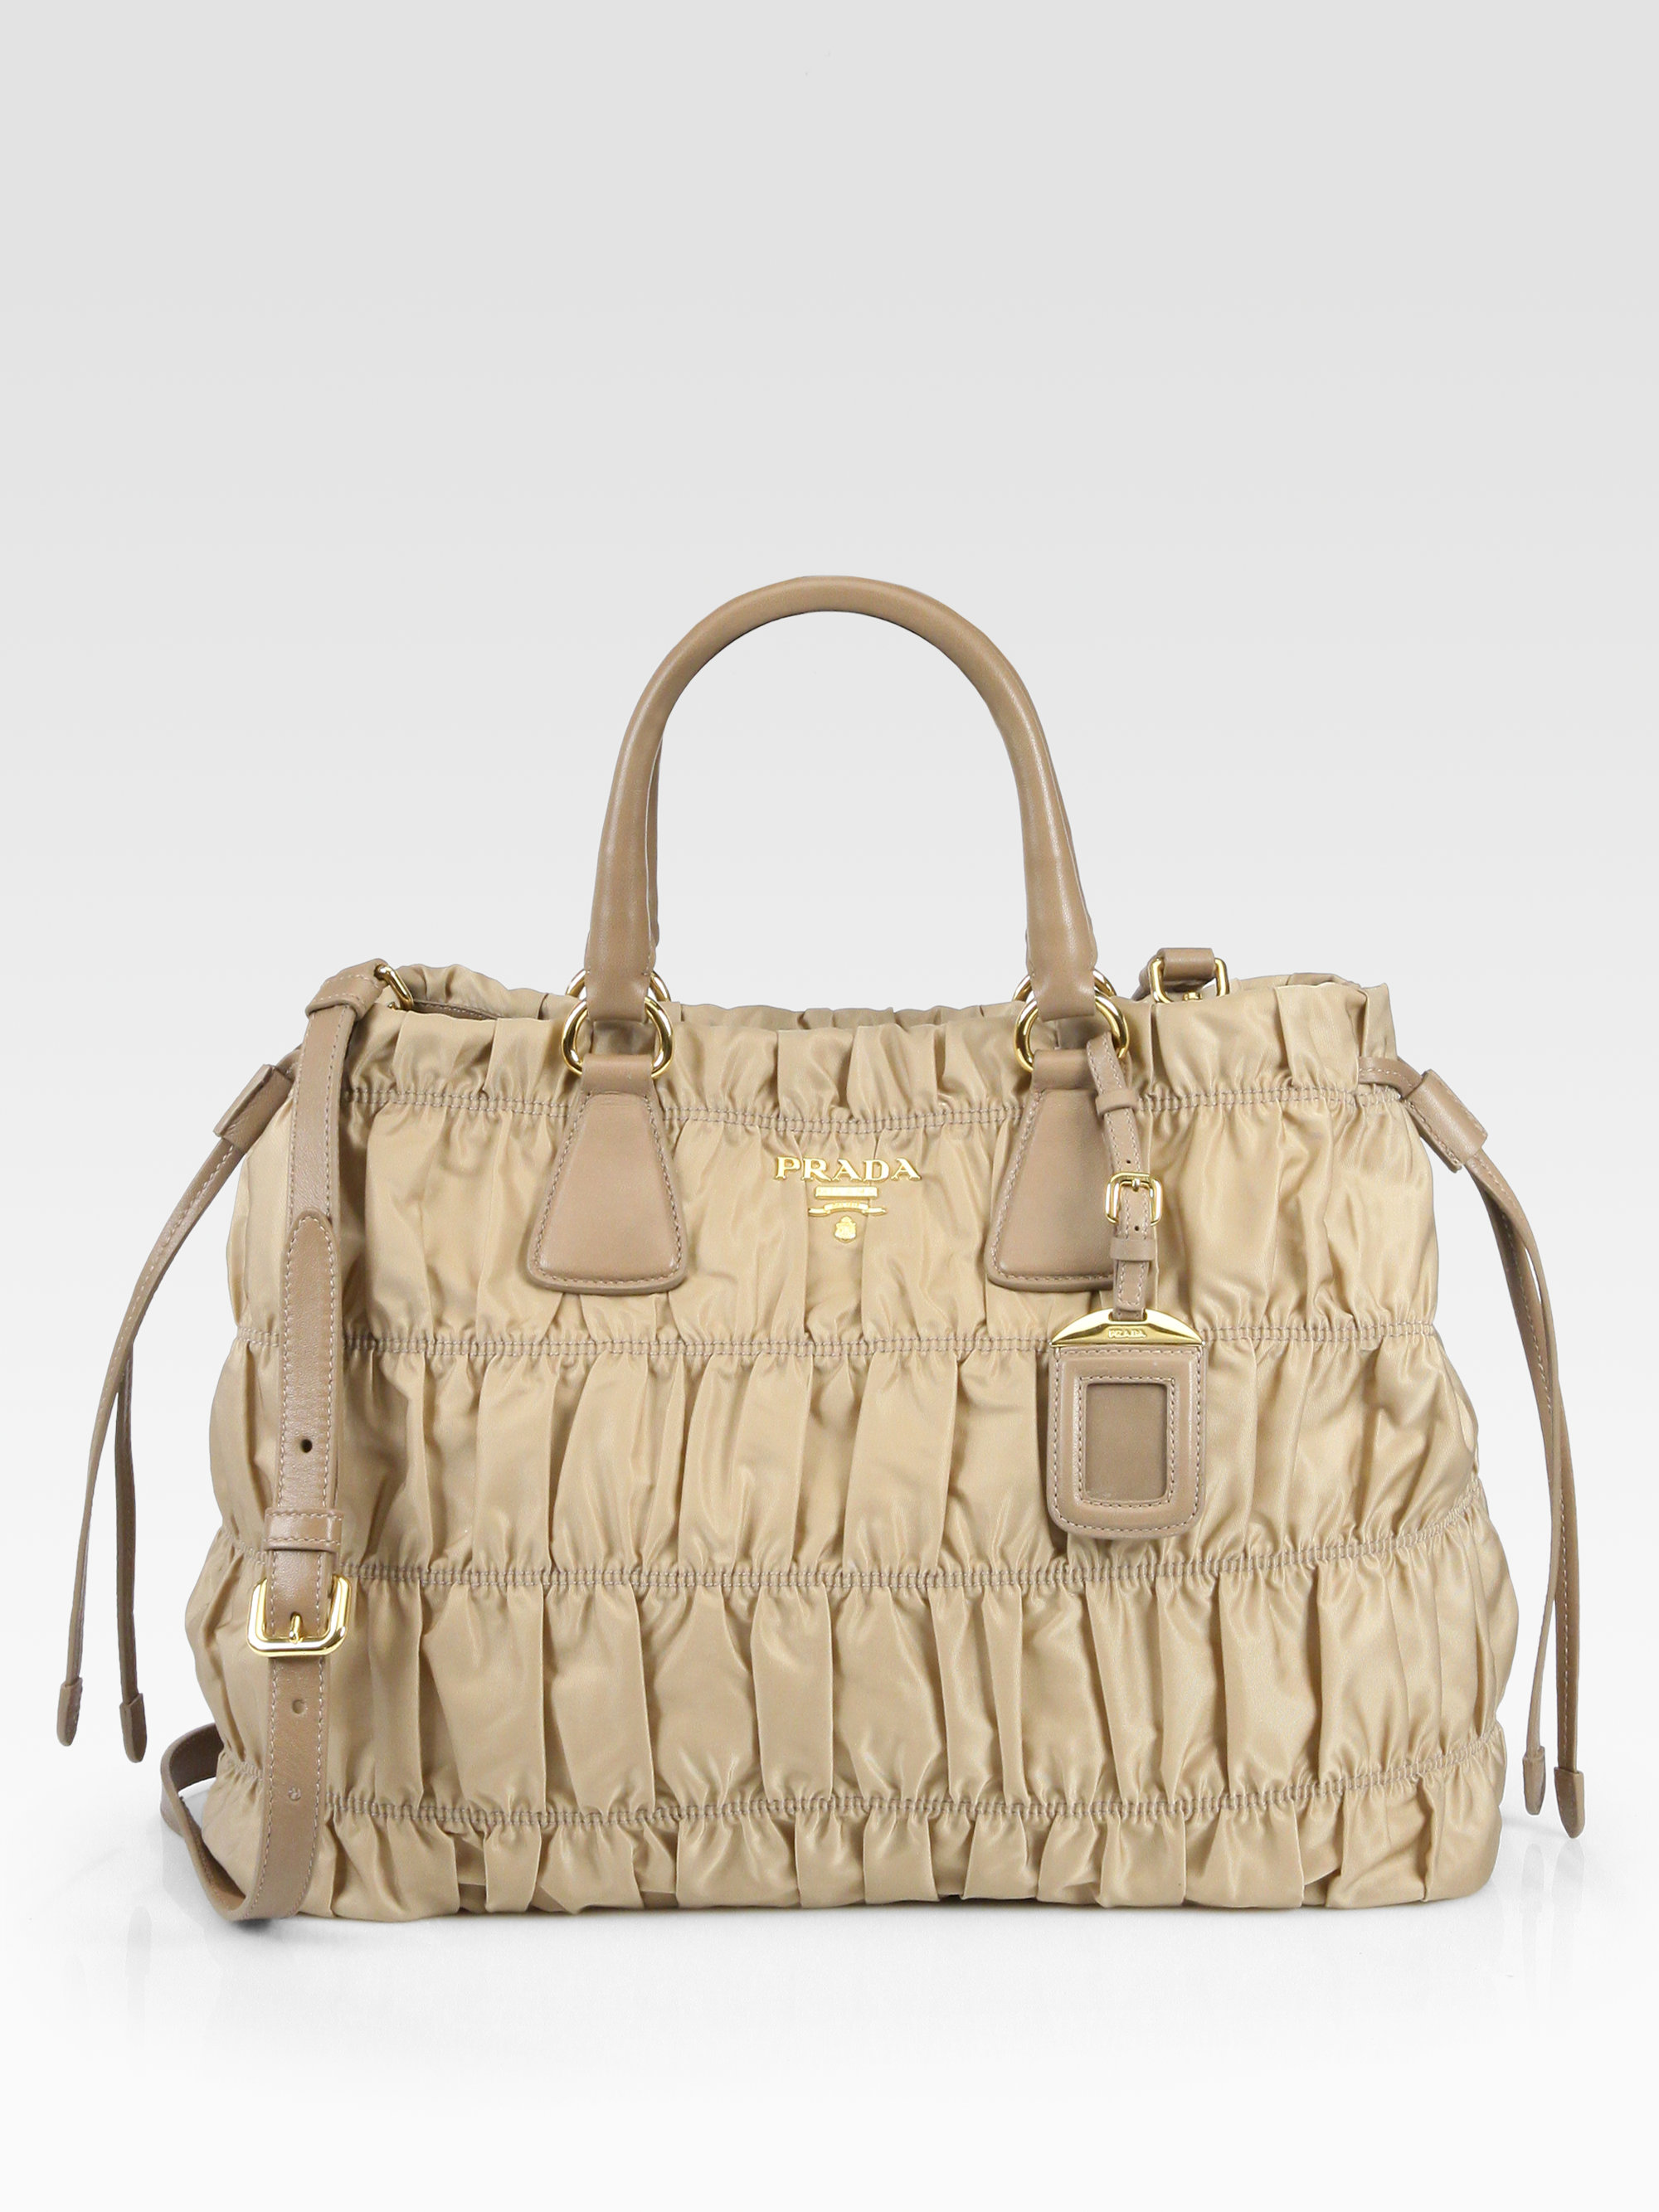 02bfe2b996de ... clearance lyst prada tessuto gaufre tote bag in natural 8a2bf 3cb75